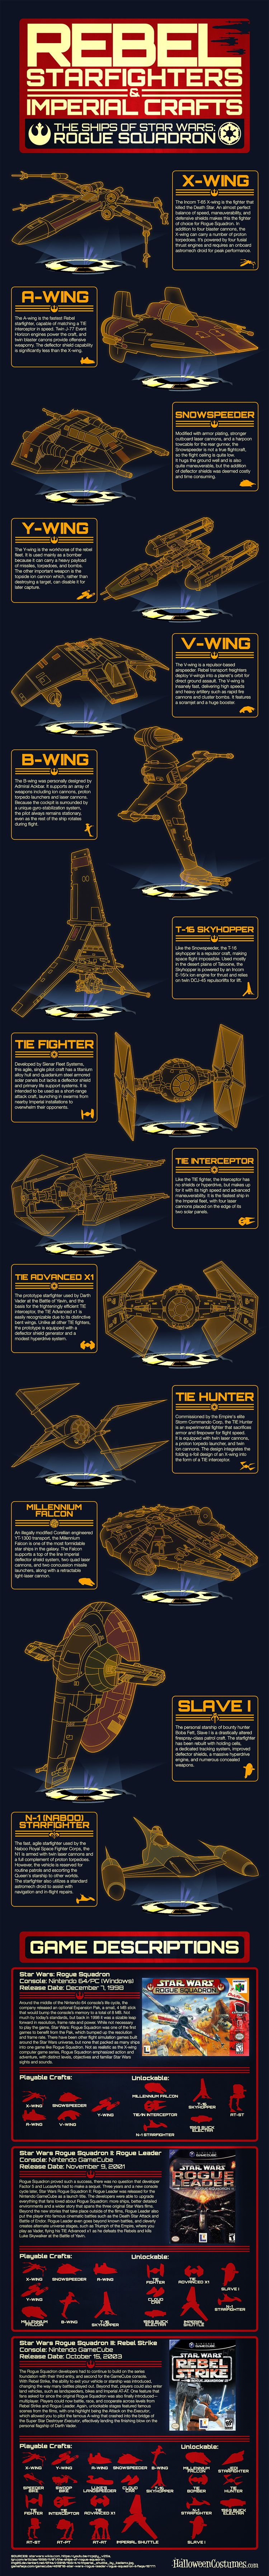 star-wars-infographic-breaks-down-rebel-starfighters-and-imperial-crafts